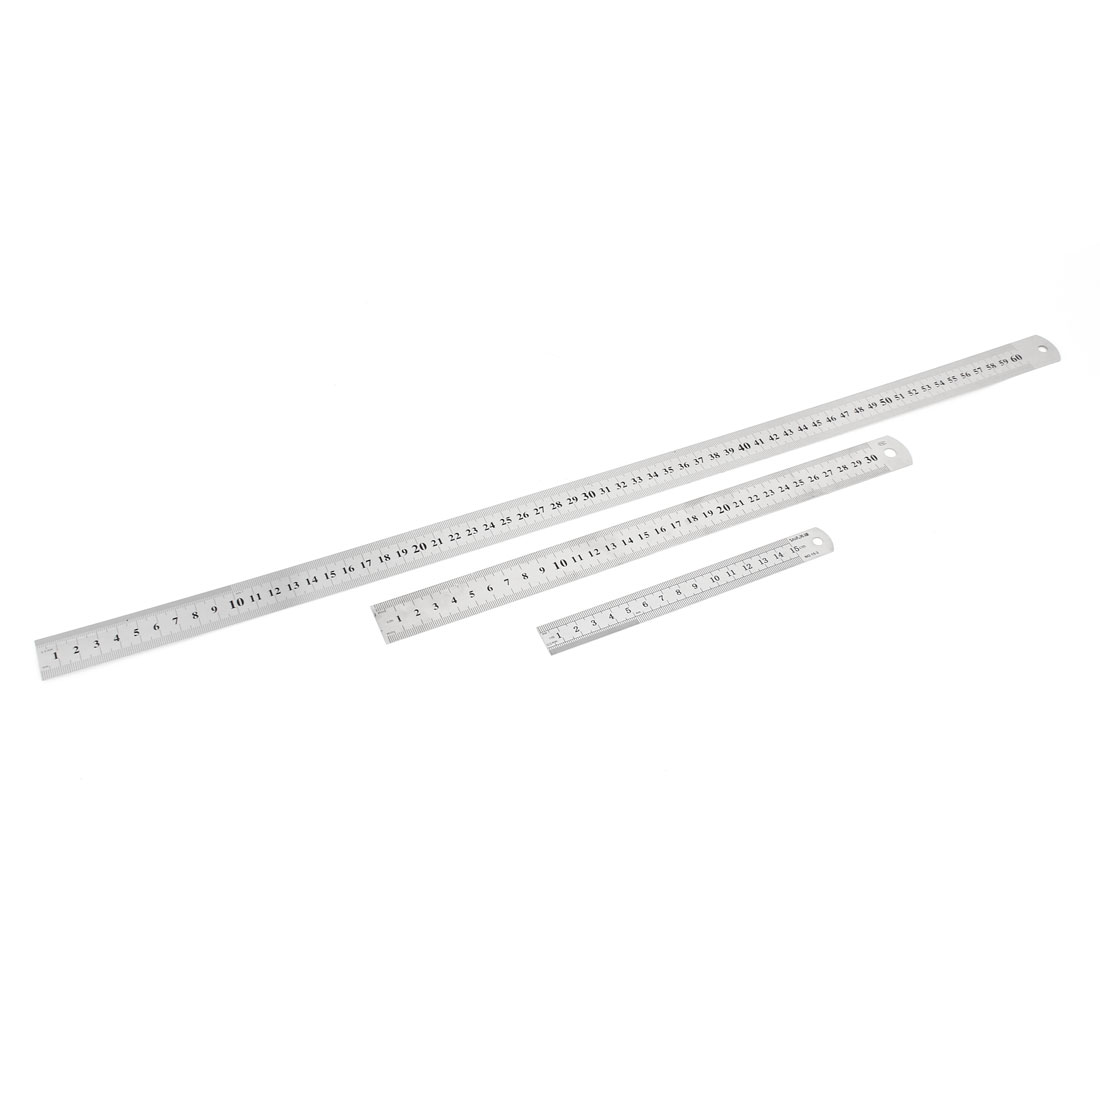 3 in 1 15cm 30cm 60cm Double Side Students Metric Straight Ruler Silver Tone